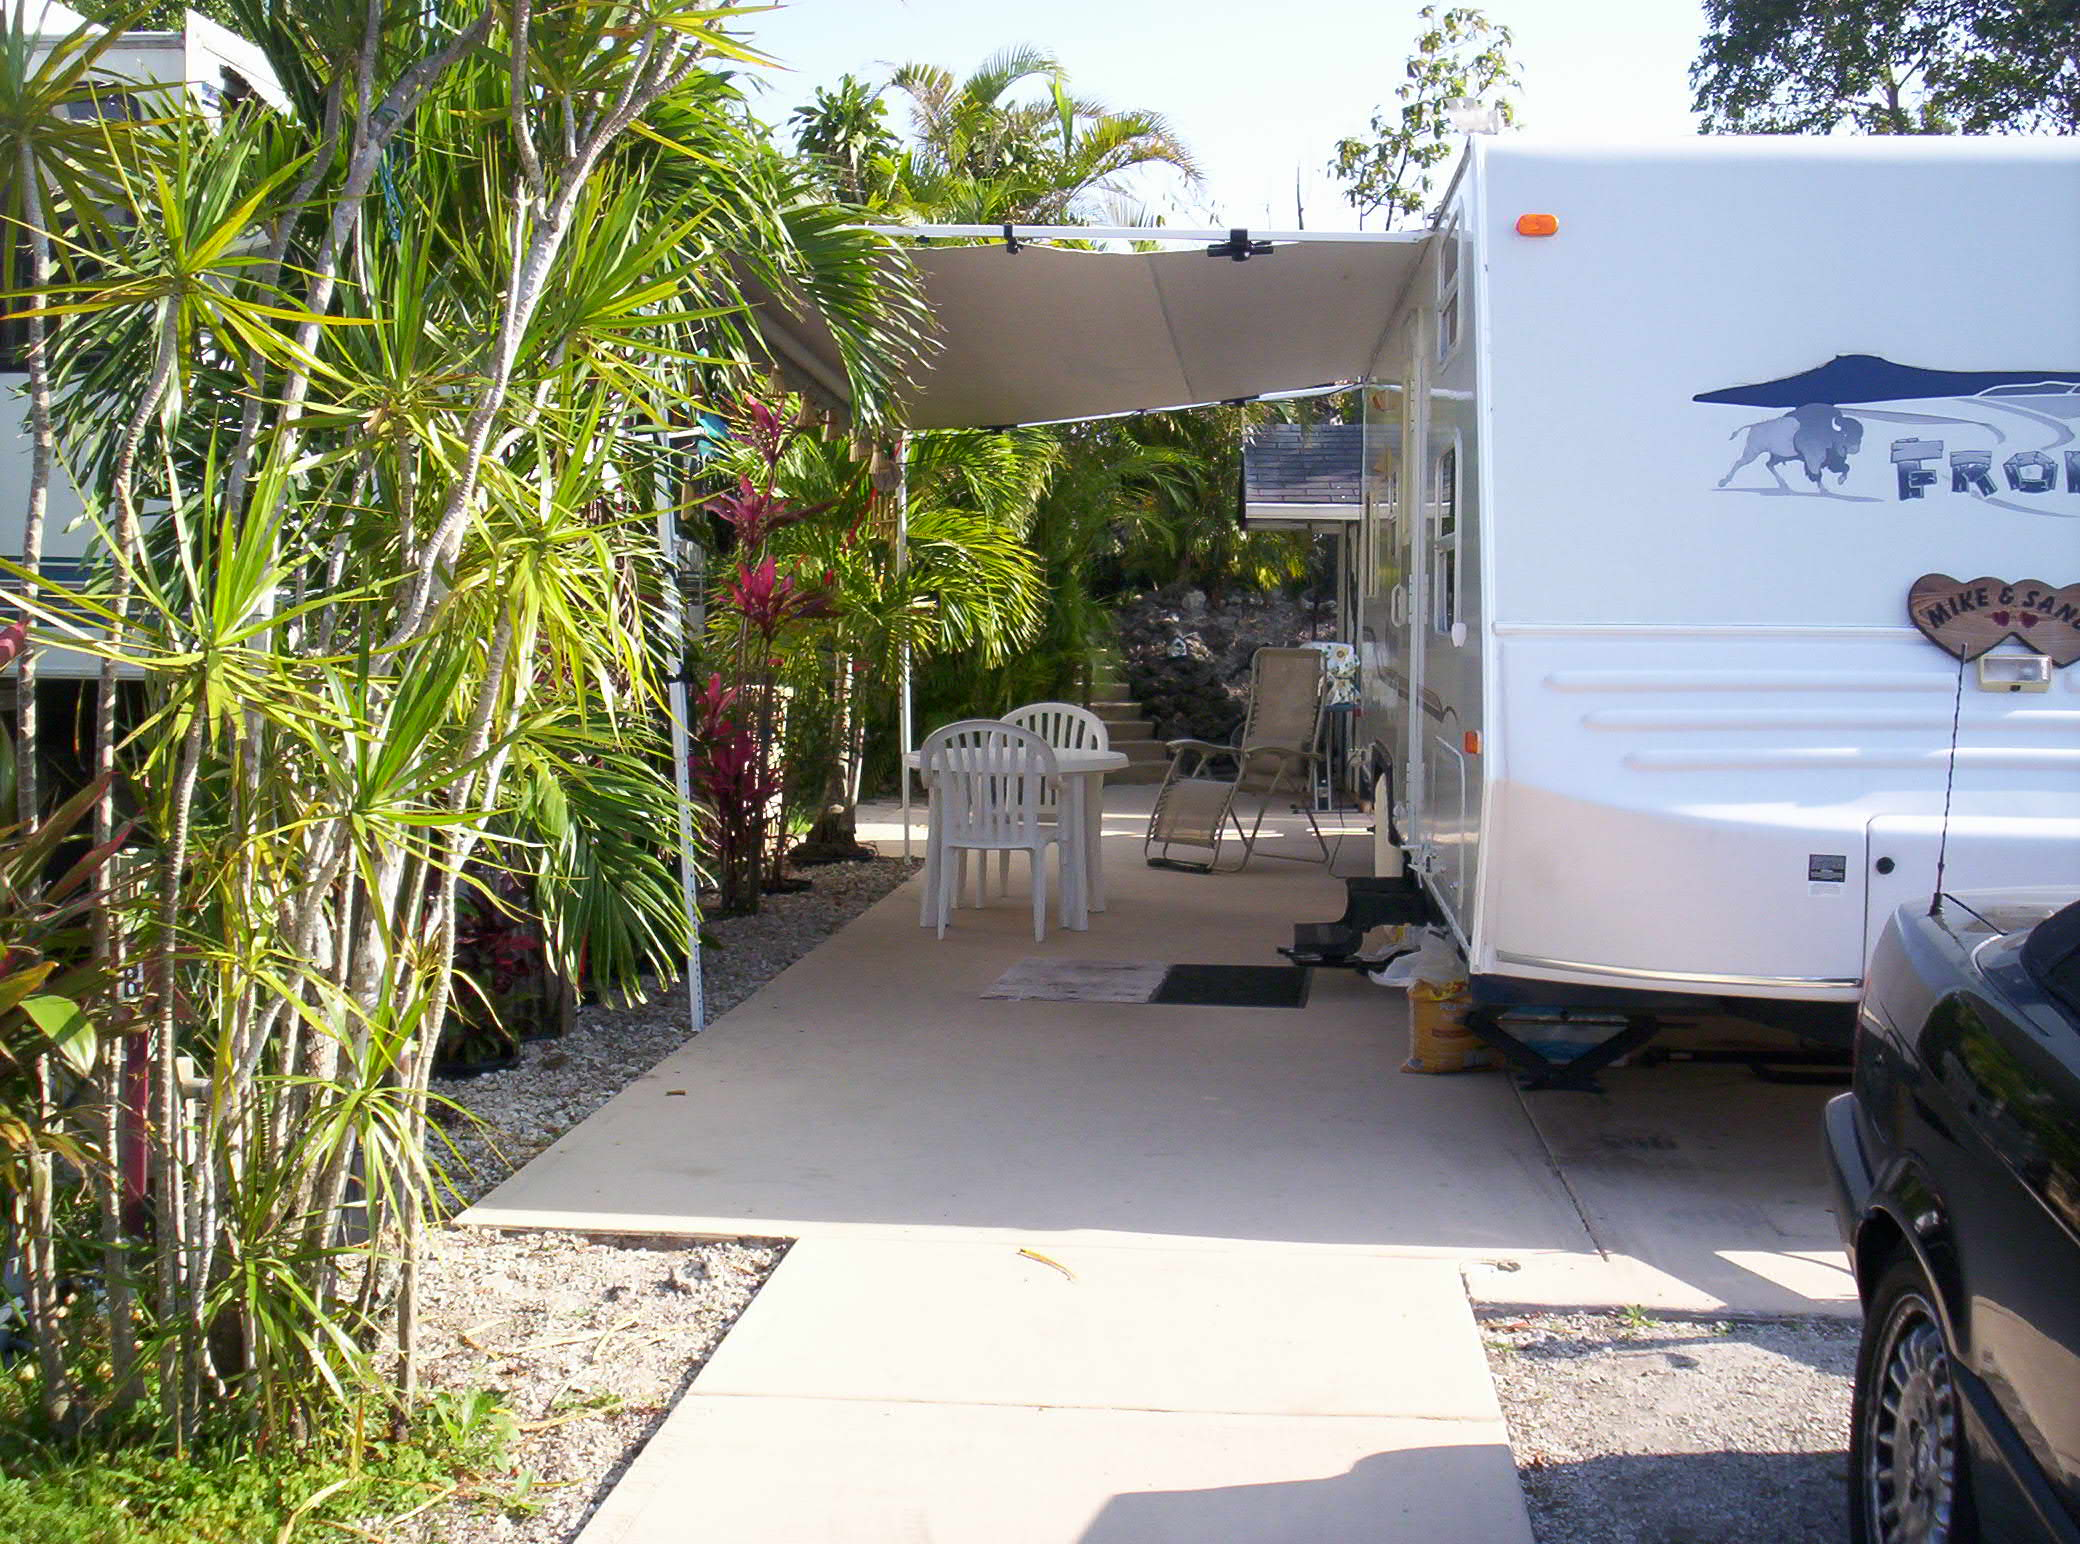 Campgrounds with full hookups in florida